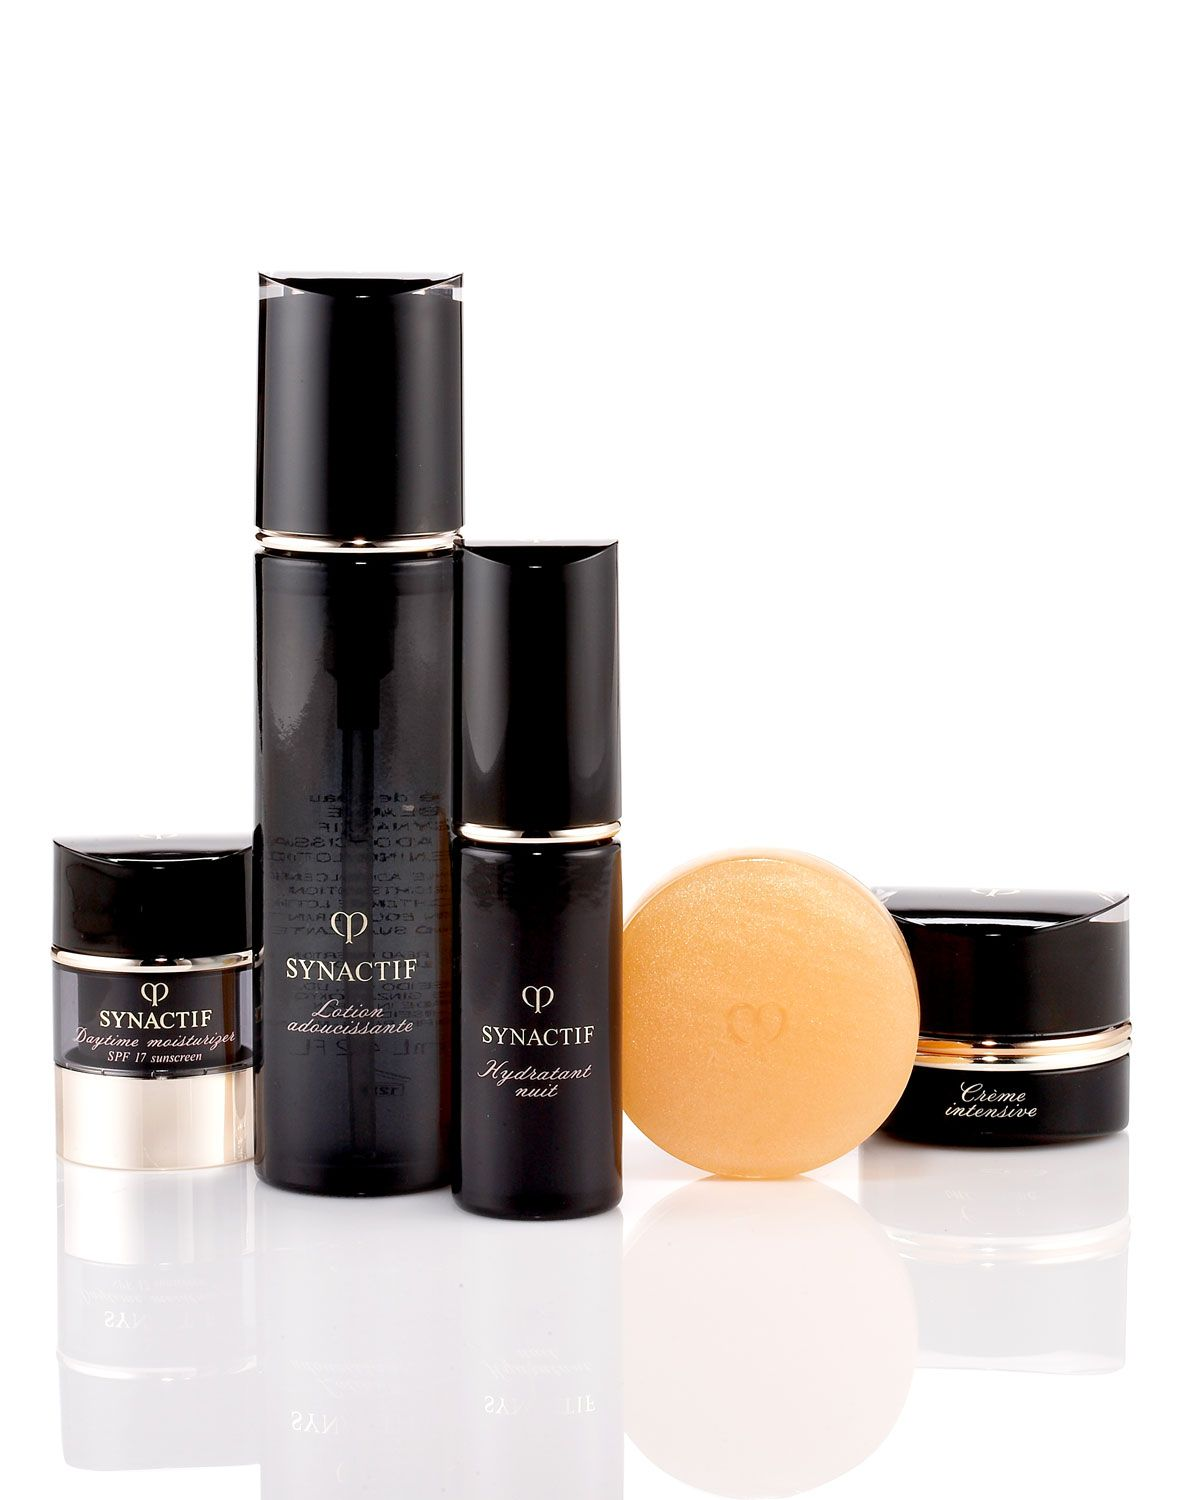 5 Most Expensive Face Creams In The Market Women Never Stop Trying Cosmetics To Look Their Best Face Cream Favorite Skincare Products Skin Care Collection